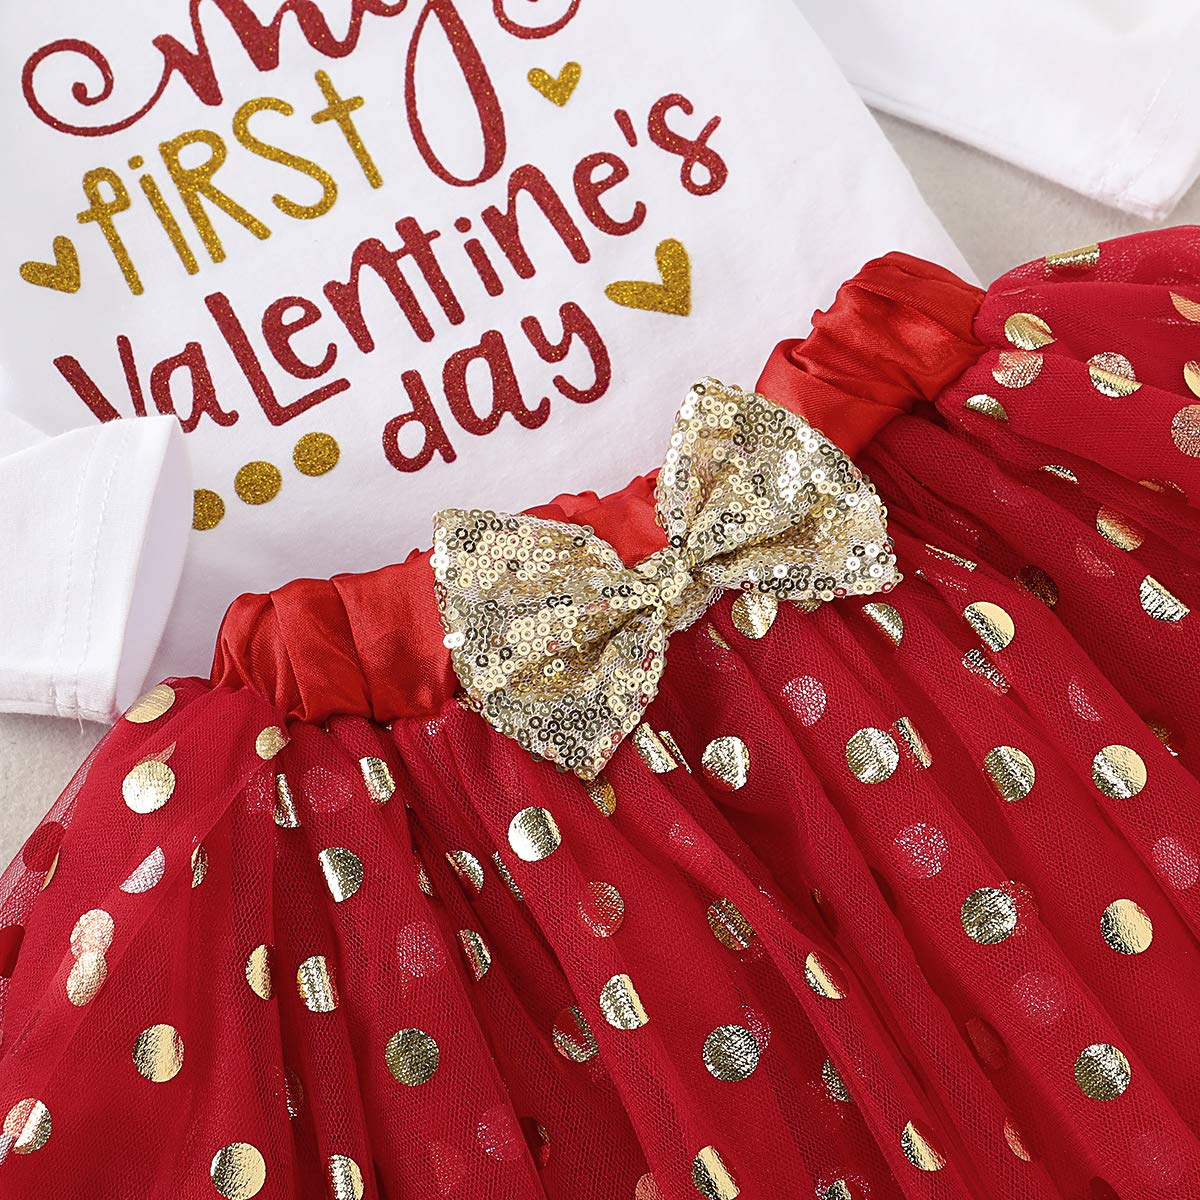 Newborn Baby Girl Clothes My First Valentines Day Outfits Romper Bows Headband 3pcs Infant Set Red Tutu Skirt Set